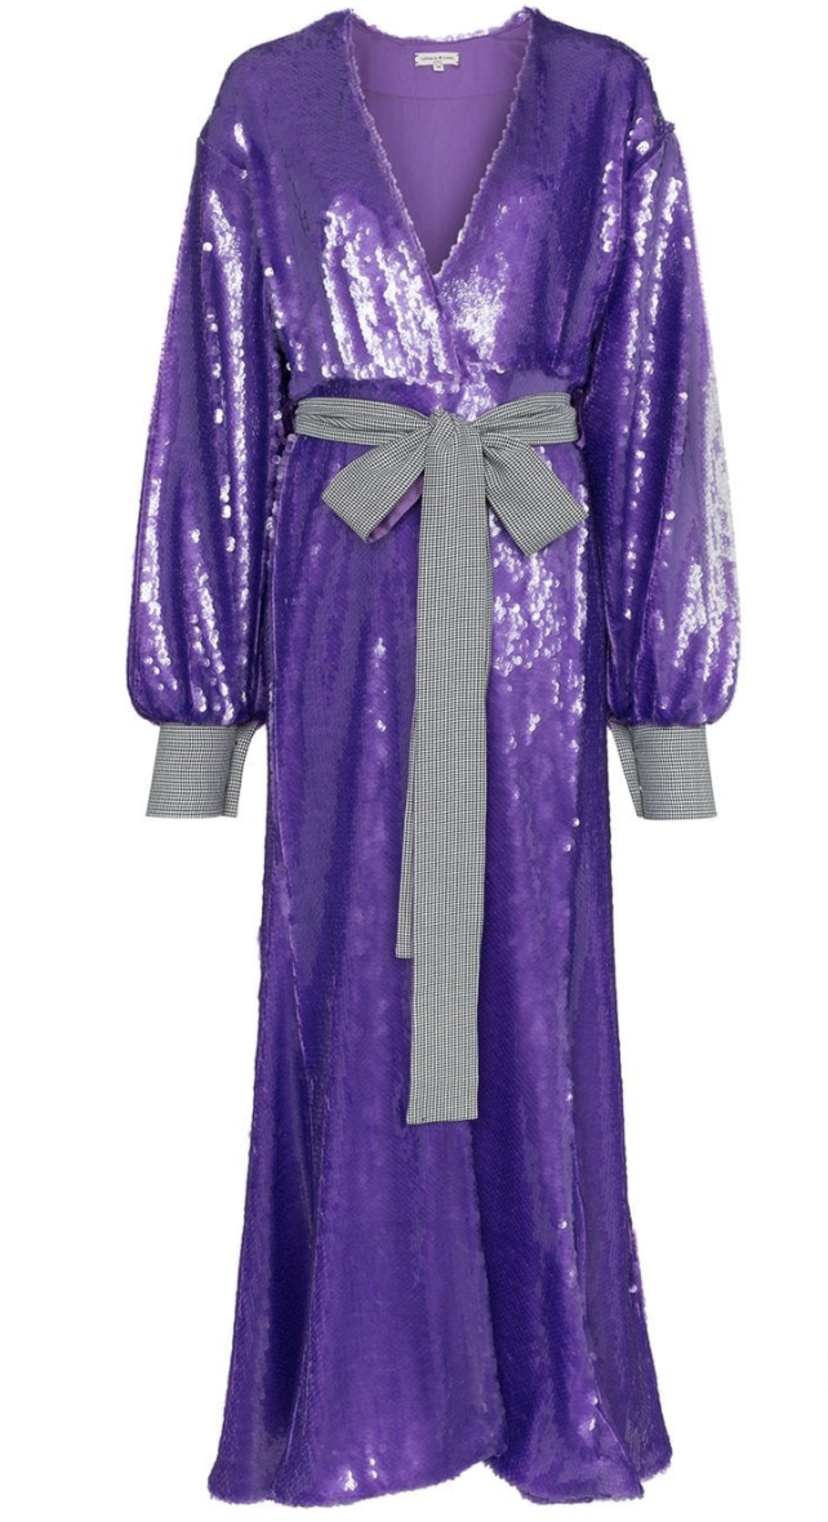 Natasha Zinko Purple Sequin Dress (Originally $2,190) Dresses Sale